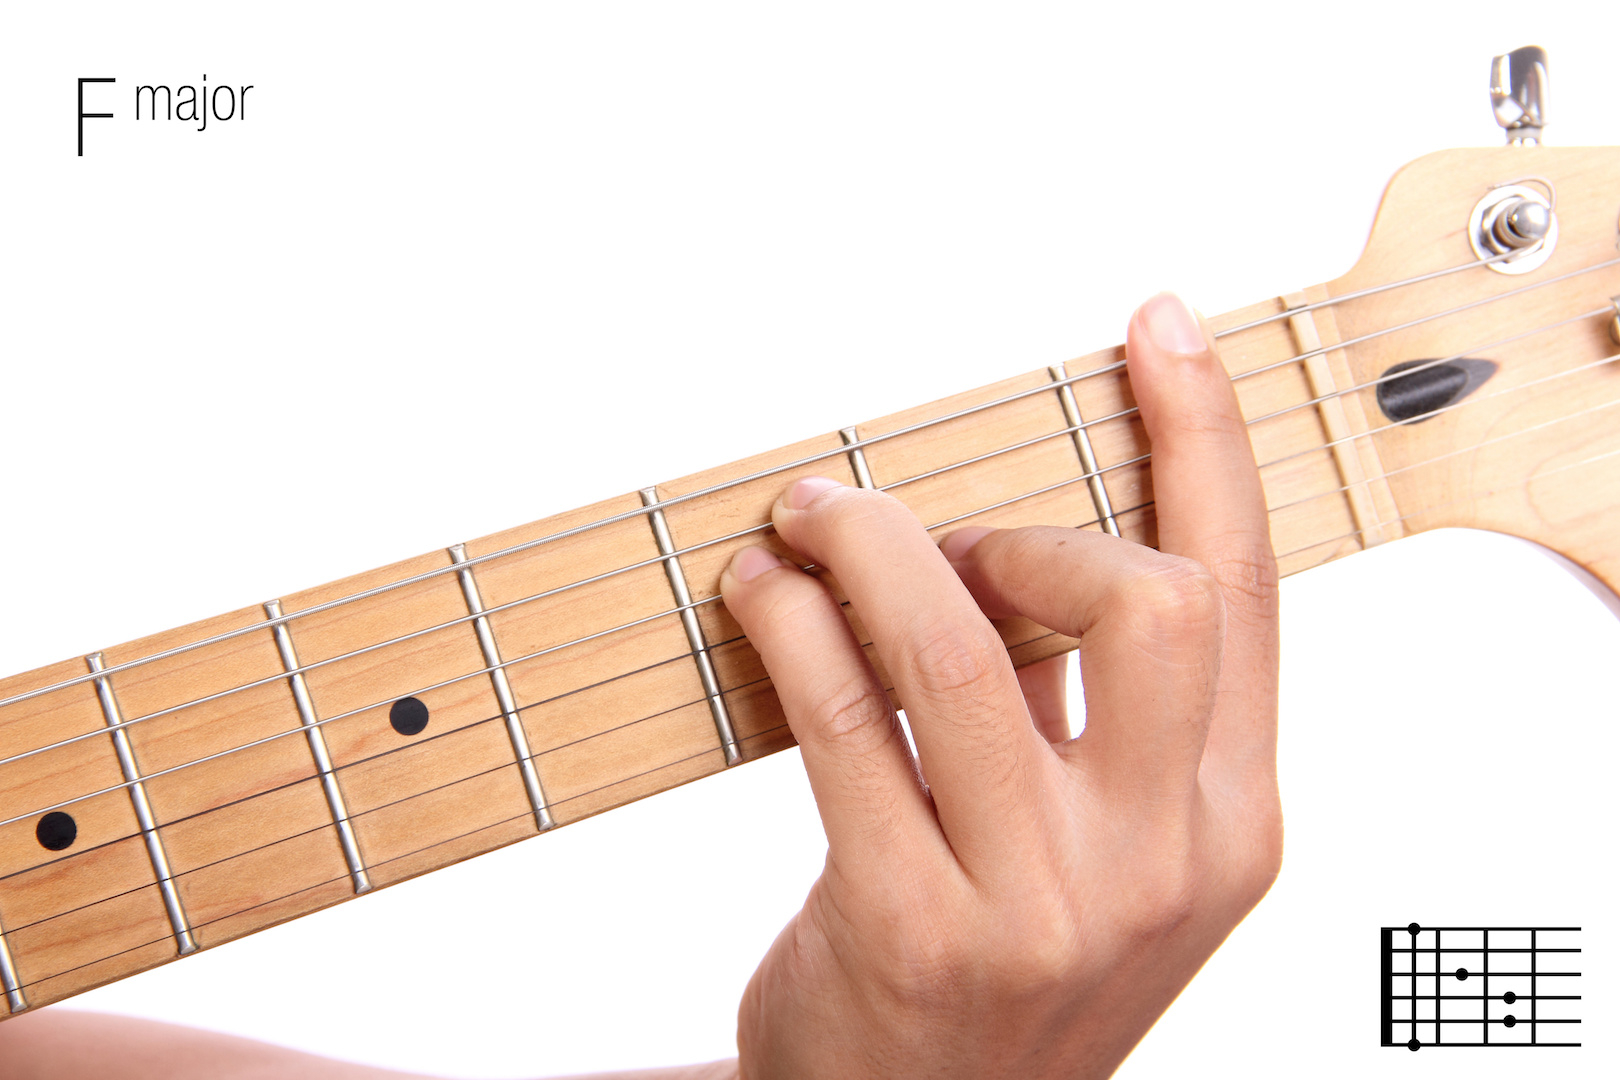 F Chord Guitar F Chord On Guitar History Relevance Chord Shapes Major Scale